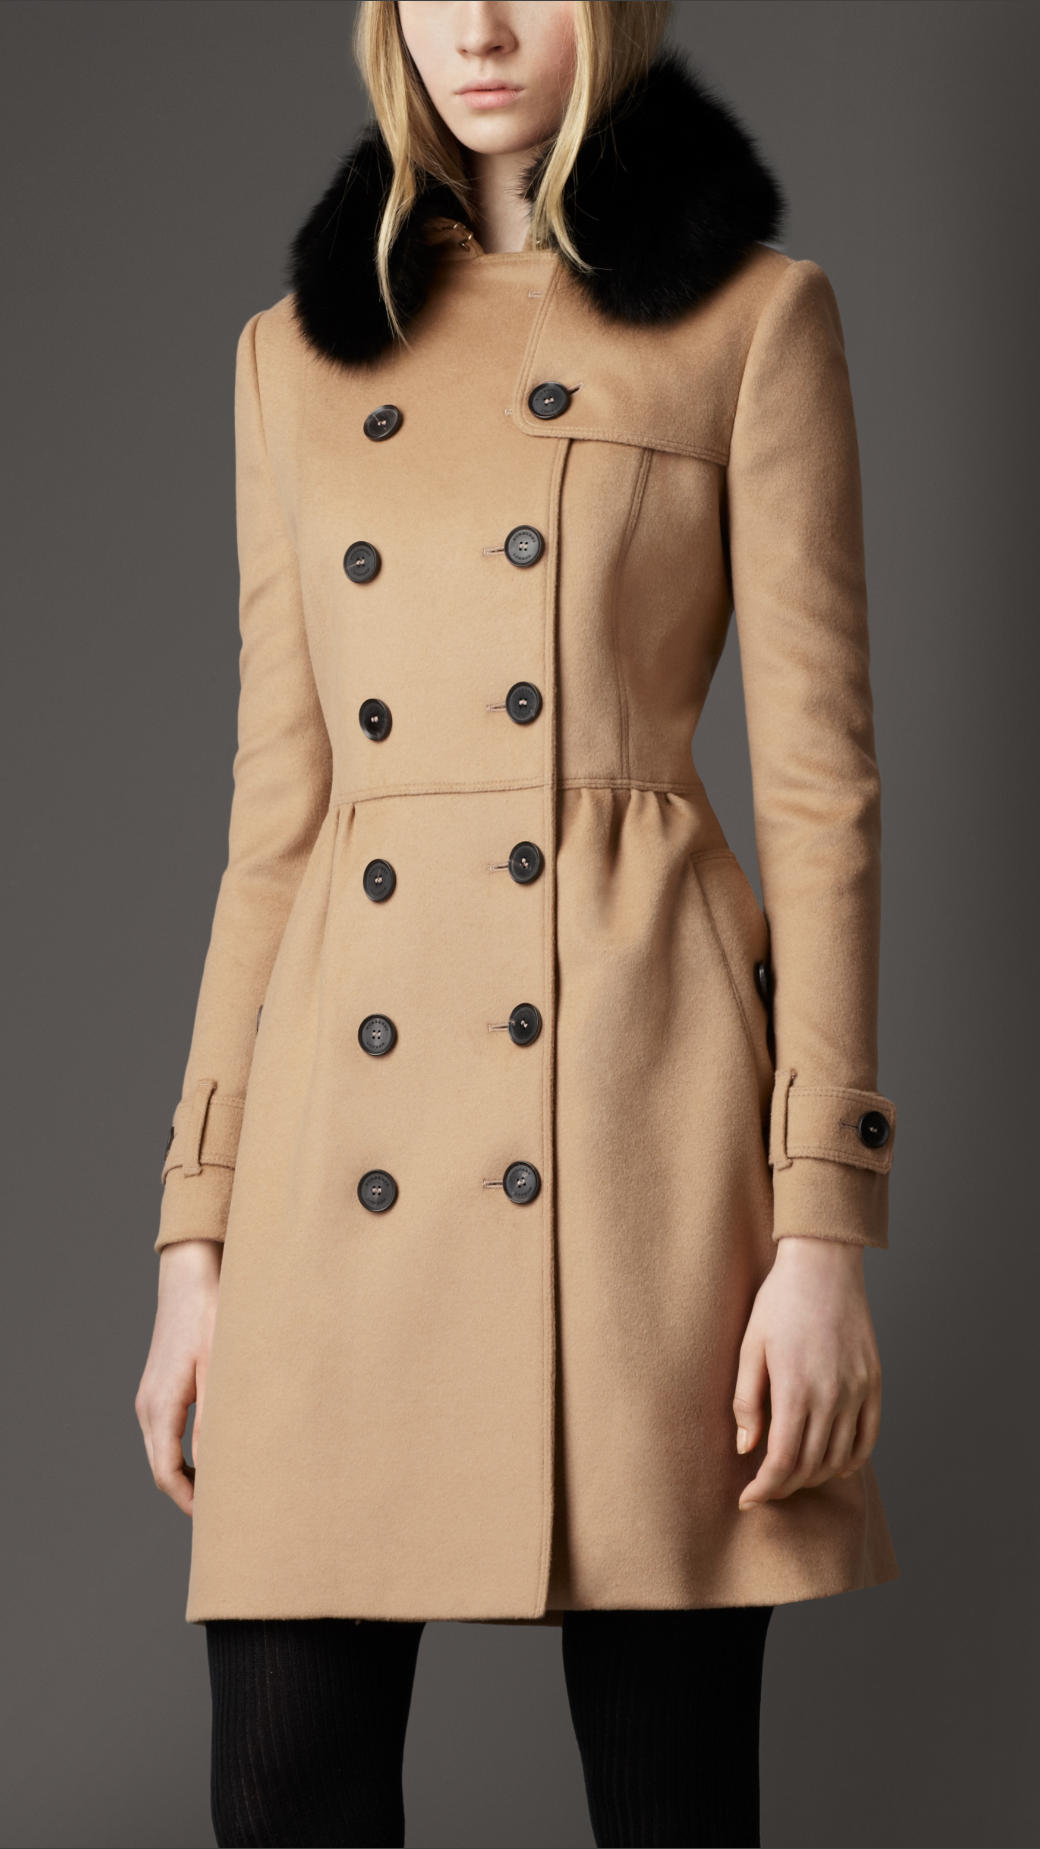 Burberry Midlength Wool Cashmere Fur Collar Trench Coat in Natural